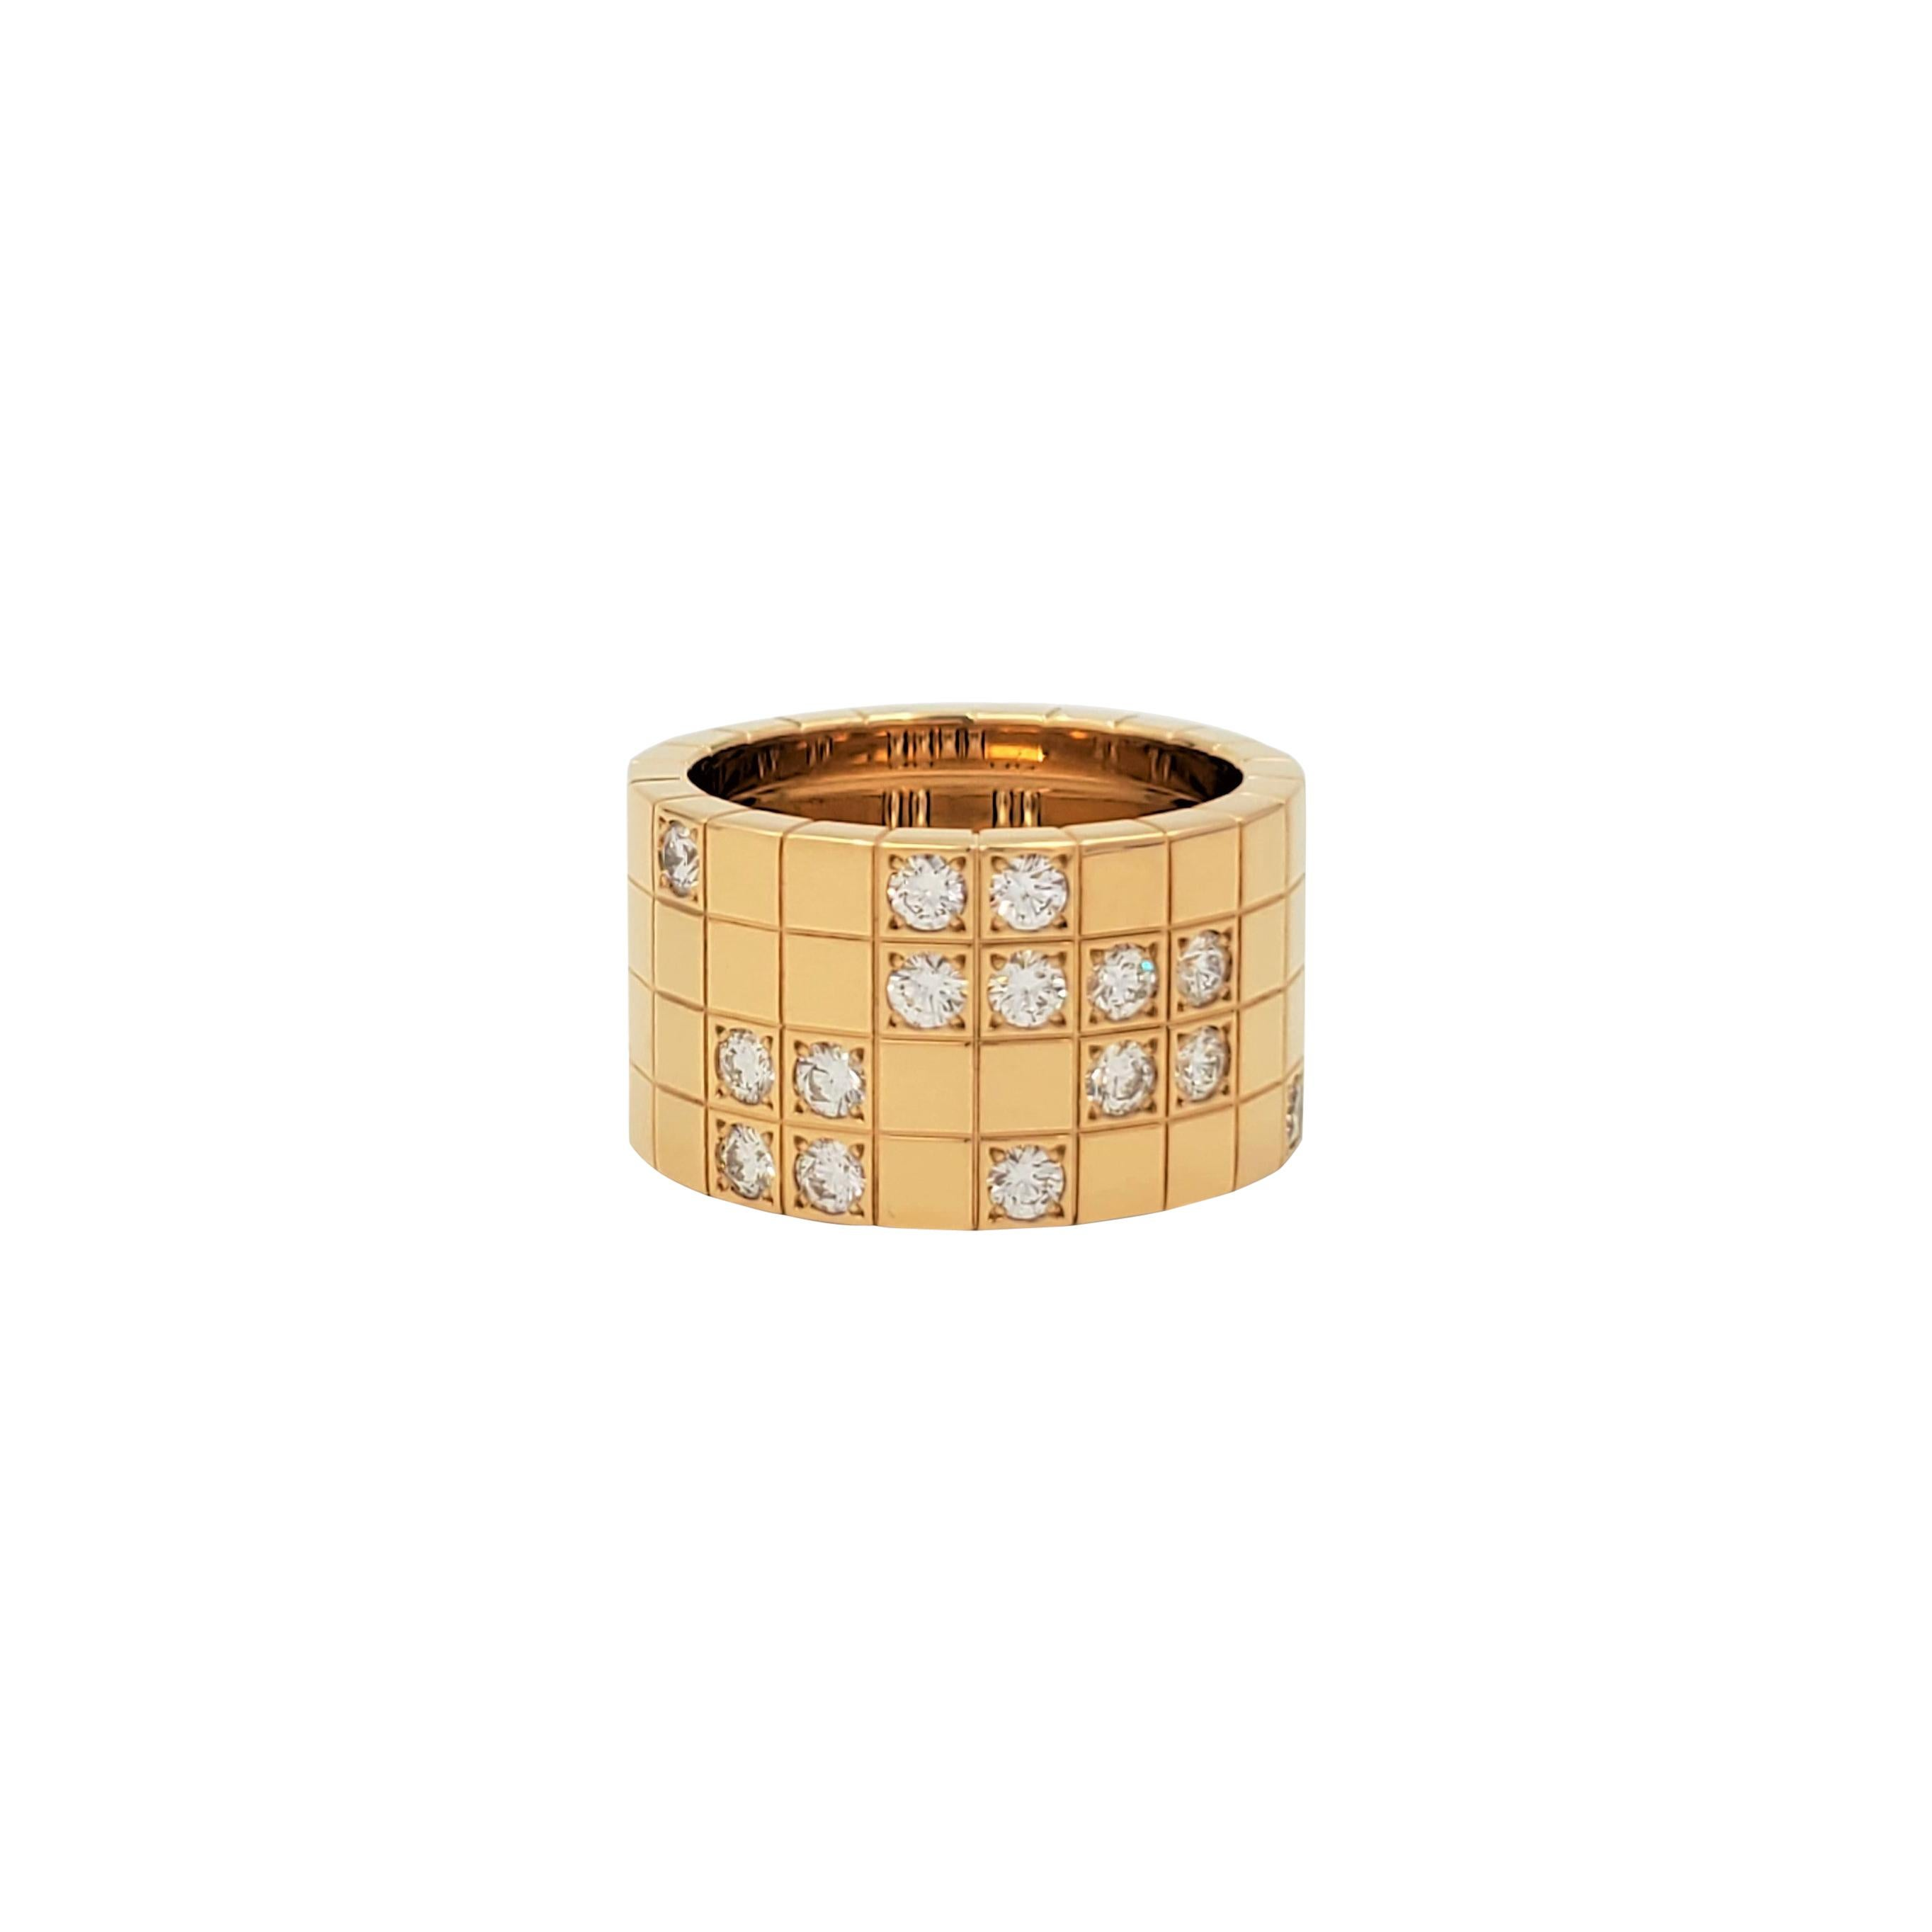 Cartier 'Lanières' Yellow Gold and Diamond Wide Band Ring